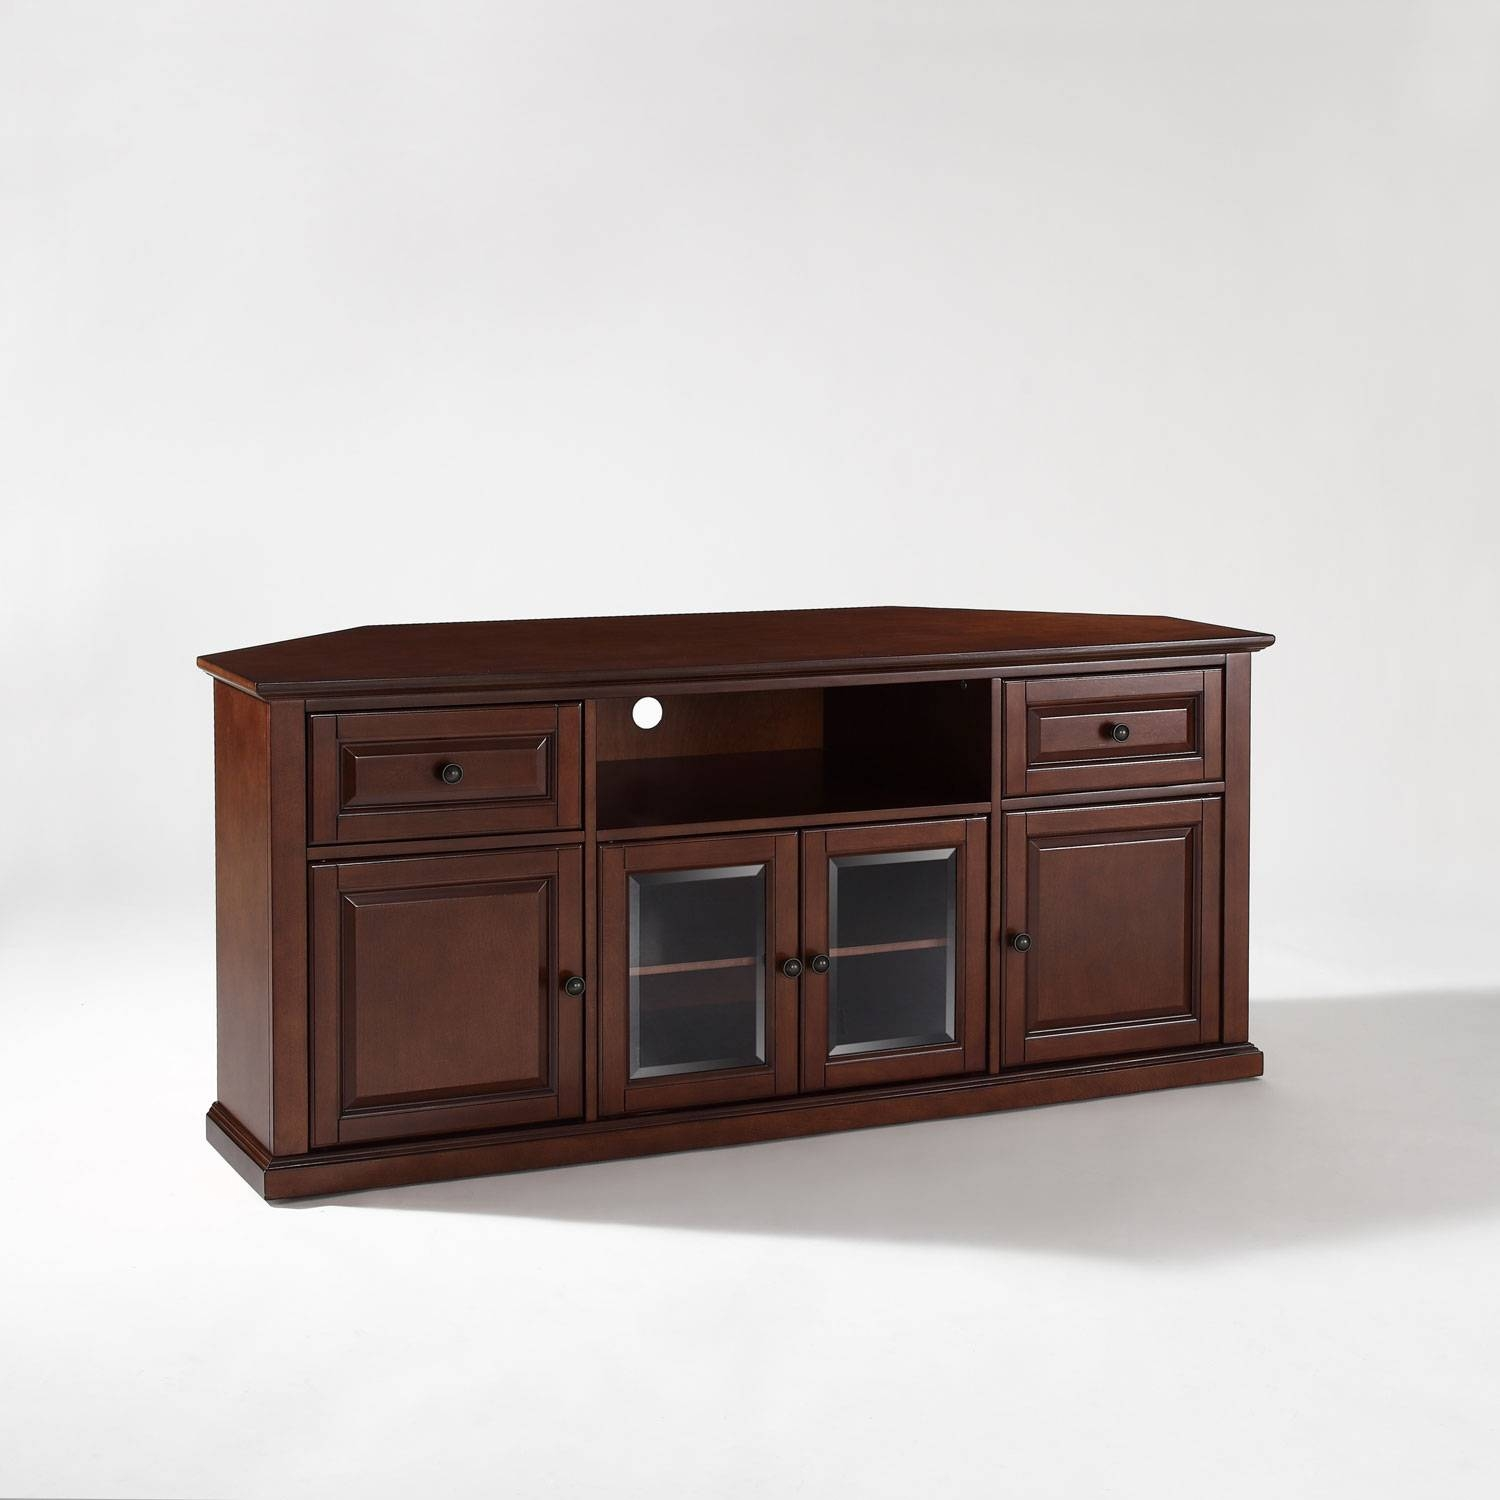 60 Inch Corner Tv Stand In Vintage Mahogany Crosley Furniture pertaining to Corner Tv Stands With Drawers (Image 2 of 15)